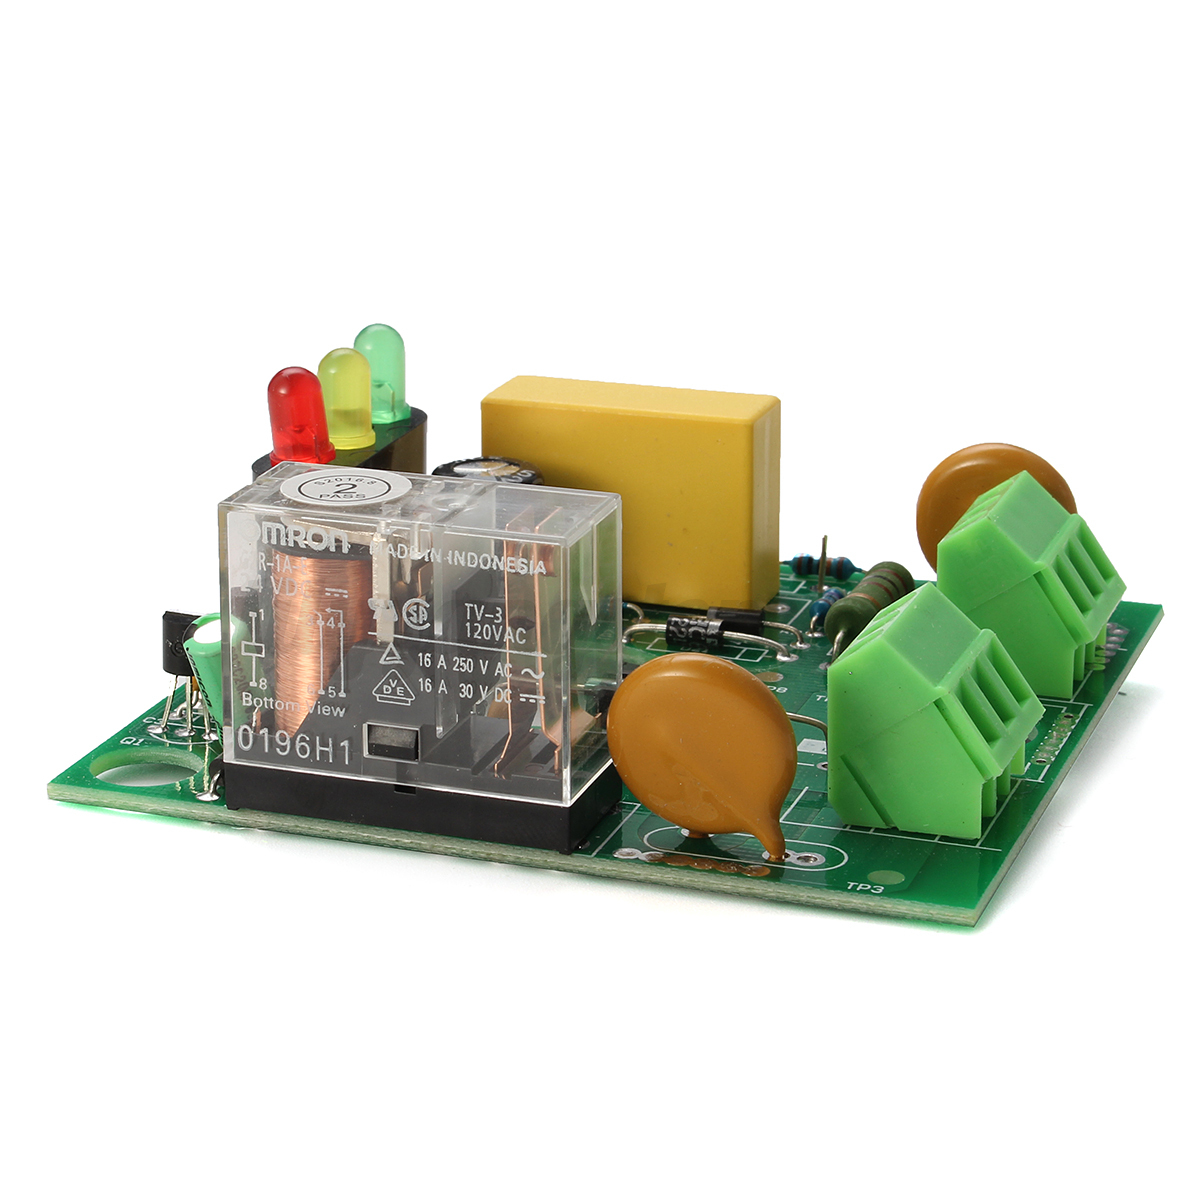 What Stores Accept Paypal Credit >> Water Pump Automatic Pressure Control Electronic Switch ...